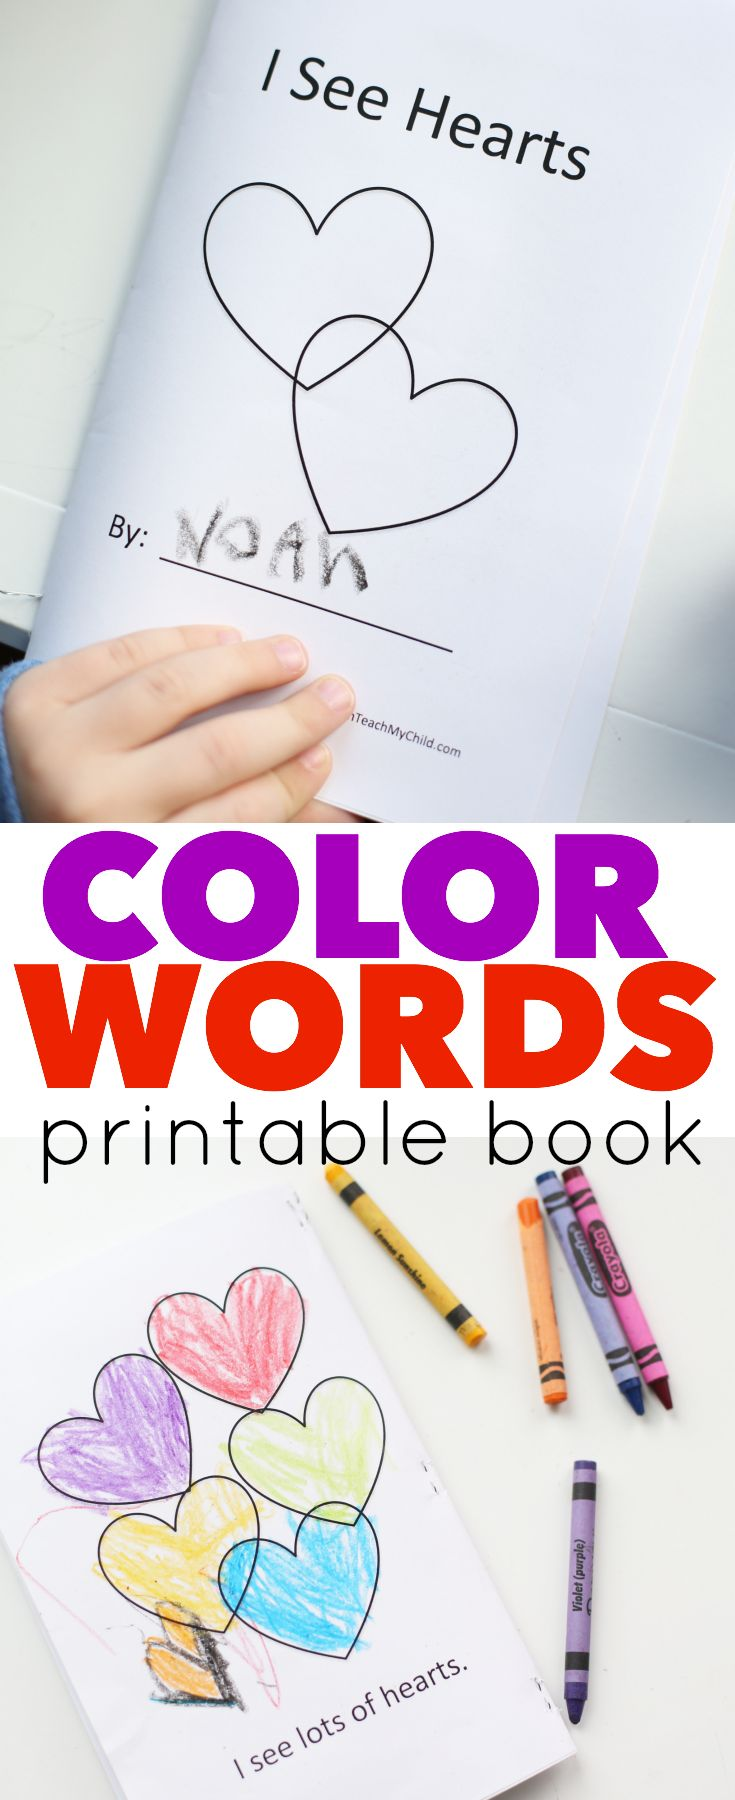 Worksheet Beginning Reading Books Printable 1000 images about february reading on pinterest valentine 1st our color words printable book i see hearts is perfect for beginning readers the child reads and colors t